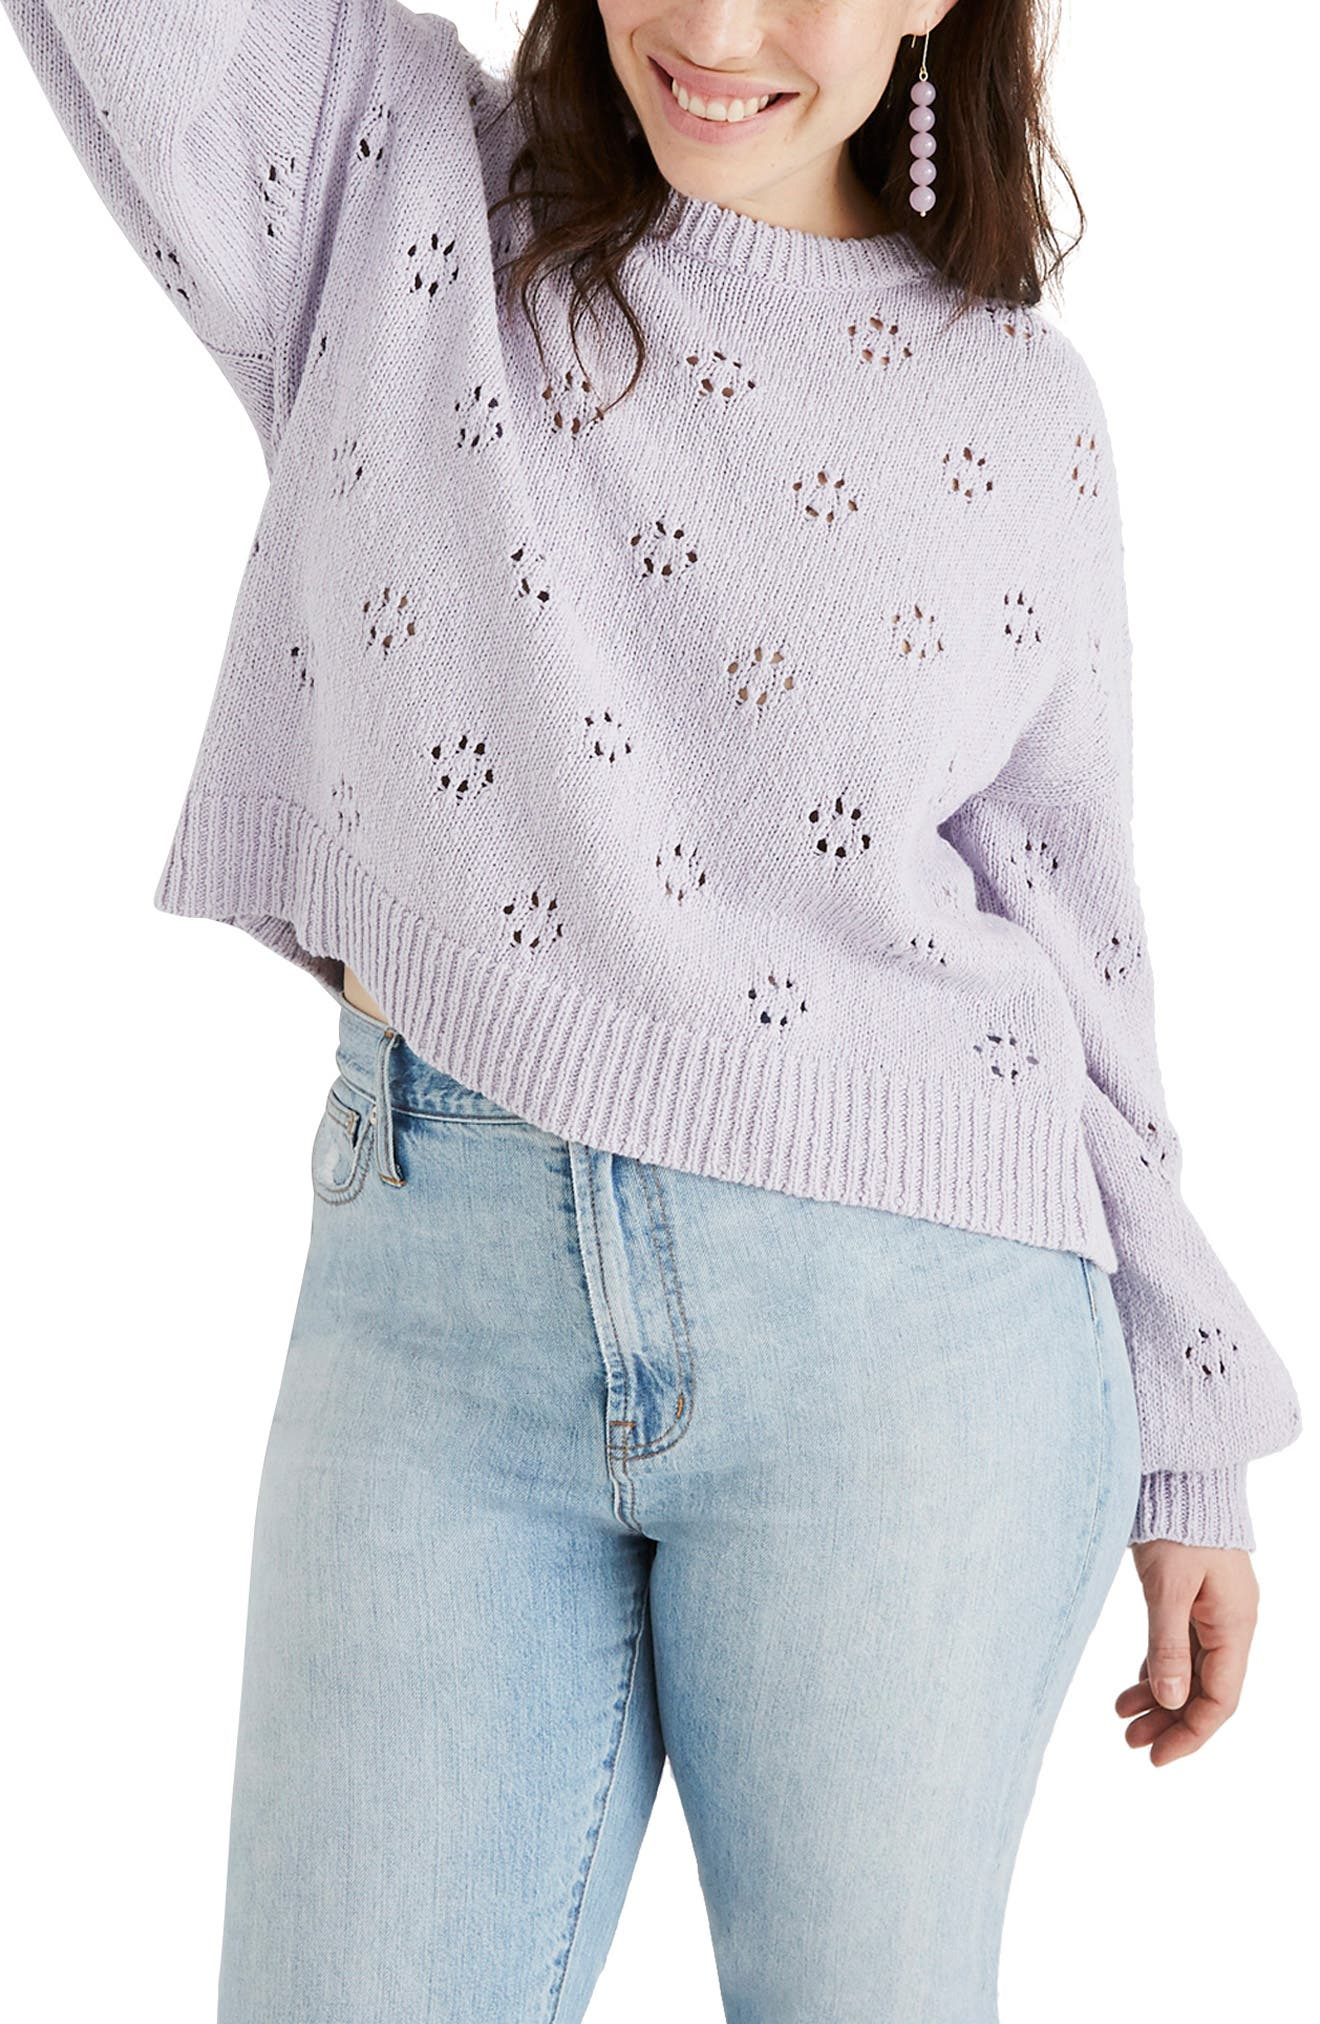 MADEWELL, Floral Pointelle Pullover Sweater, Alternate thumbnail 2, color, SUNDRENCHED LILAC